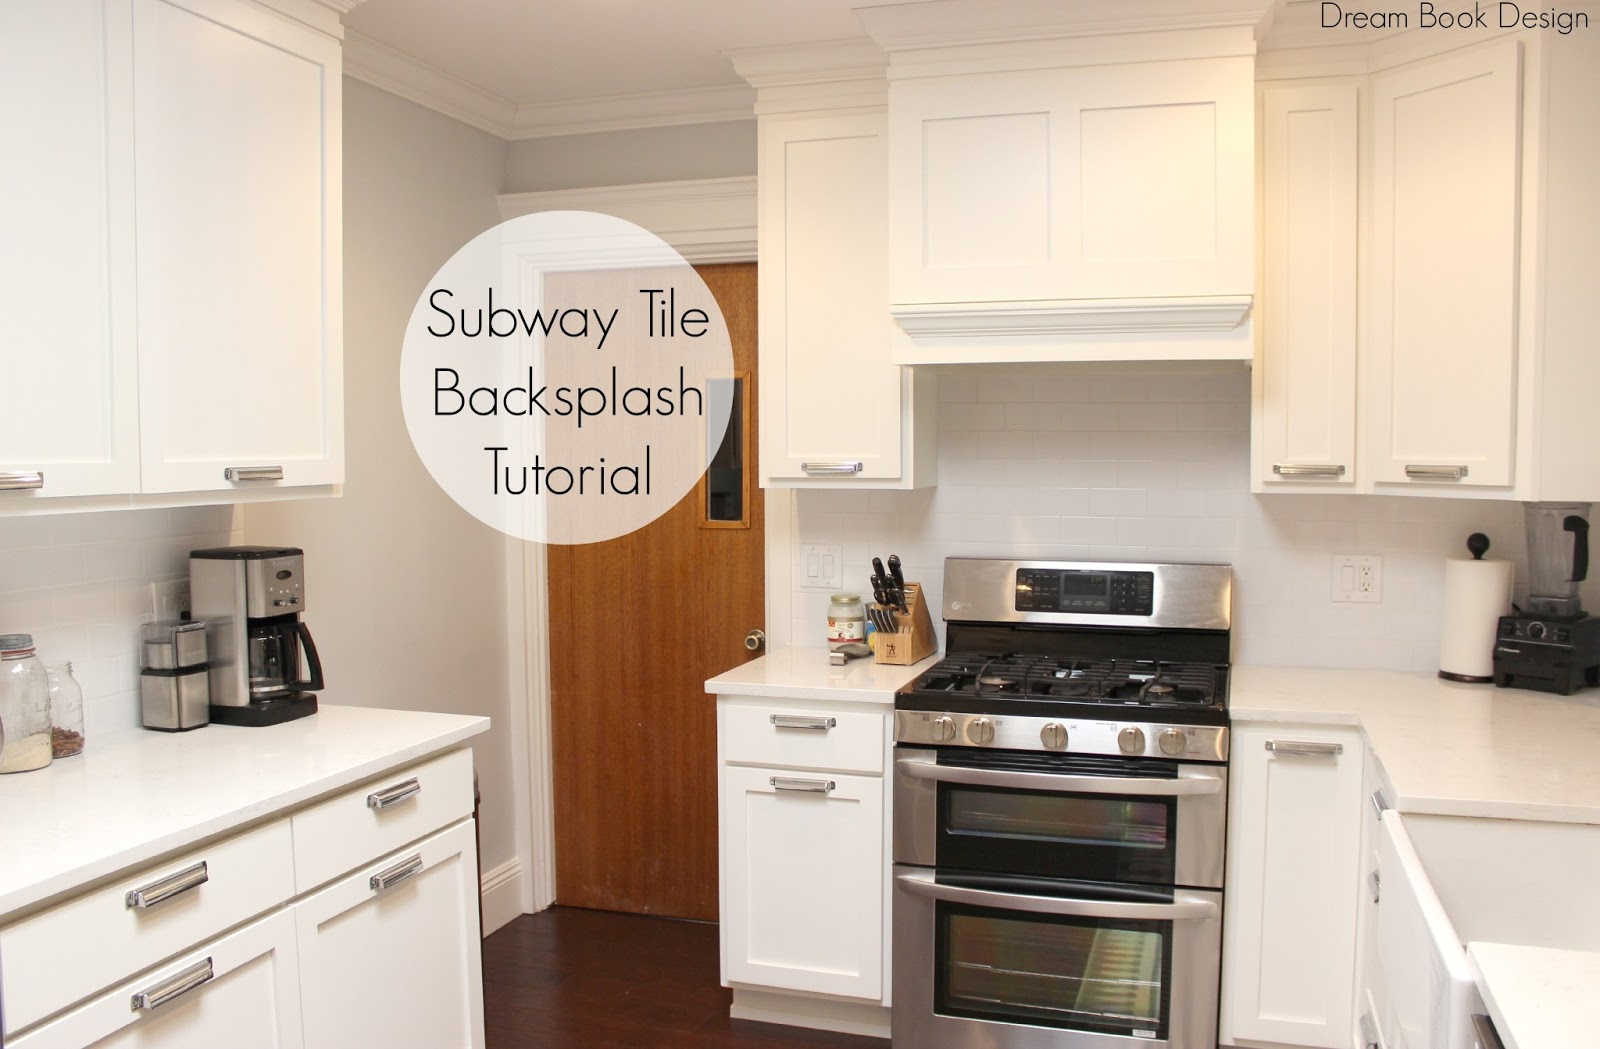 Easy diy subway tile backsplash tutorial dream book design Backsplash tile installation